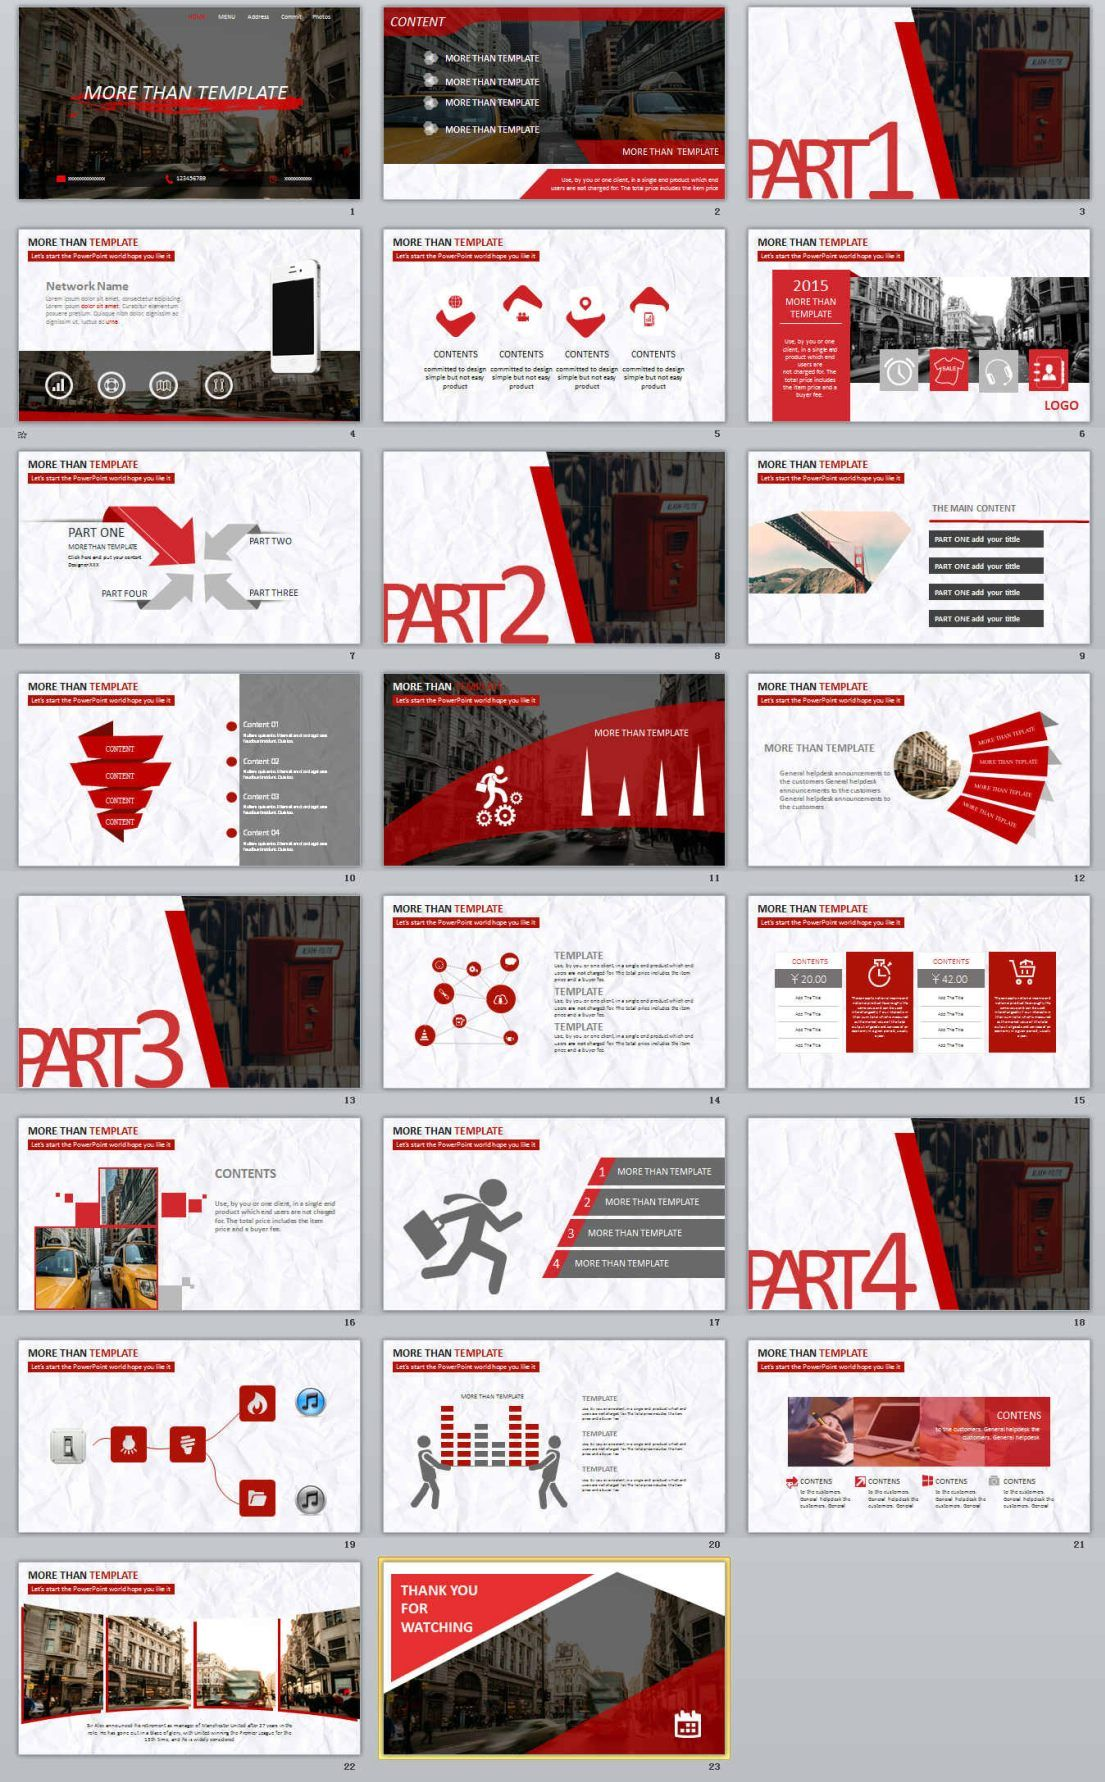 23 redcolor report powerpoint templates paneles de control 23 redcolor report powerpoint templates the highest quality powerpoint templates and keynote templates download toneelgroepblik Gallery